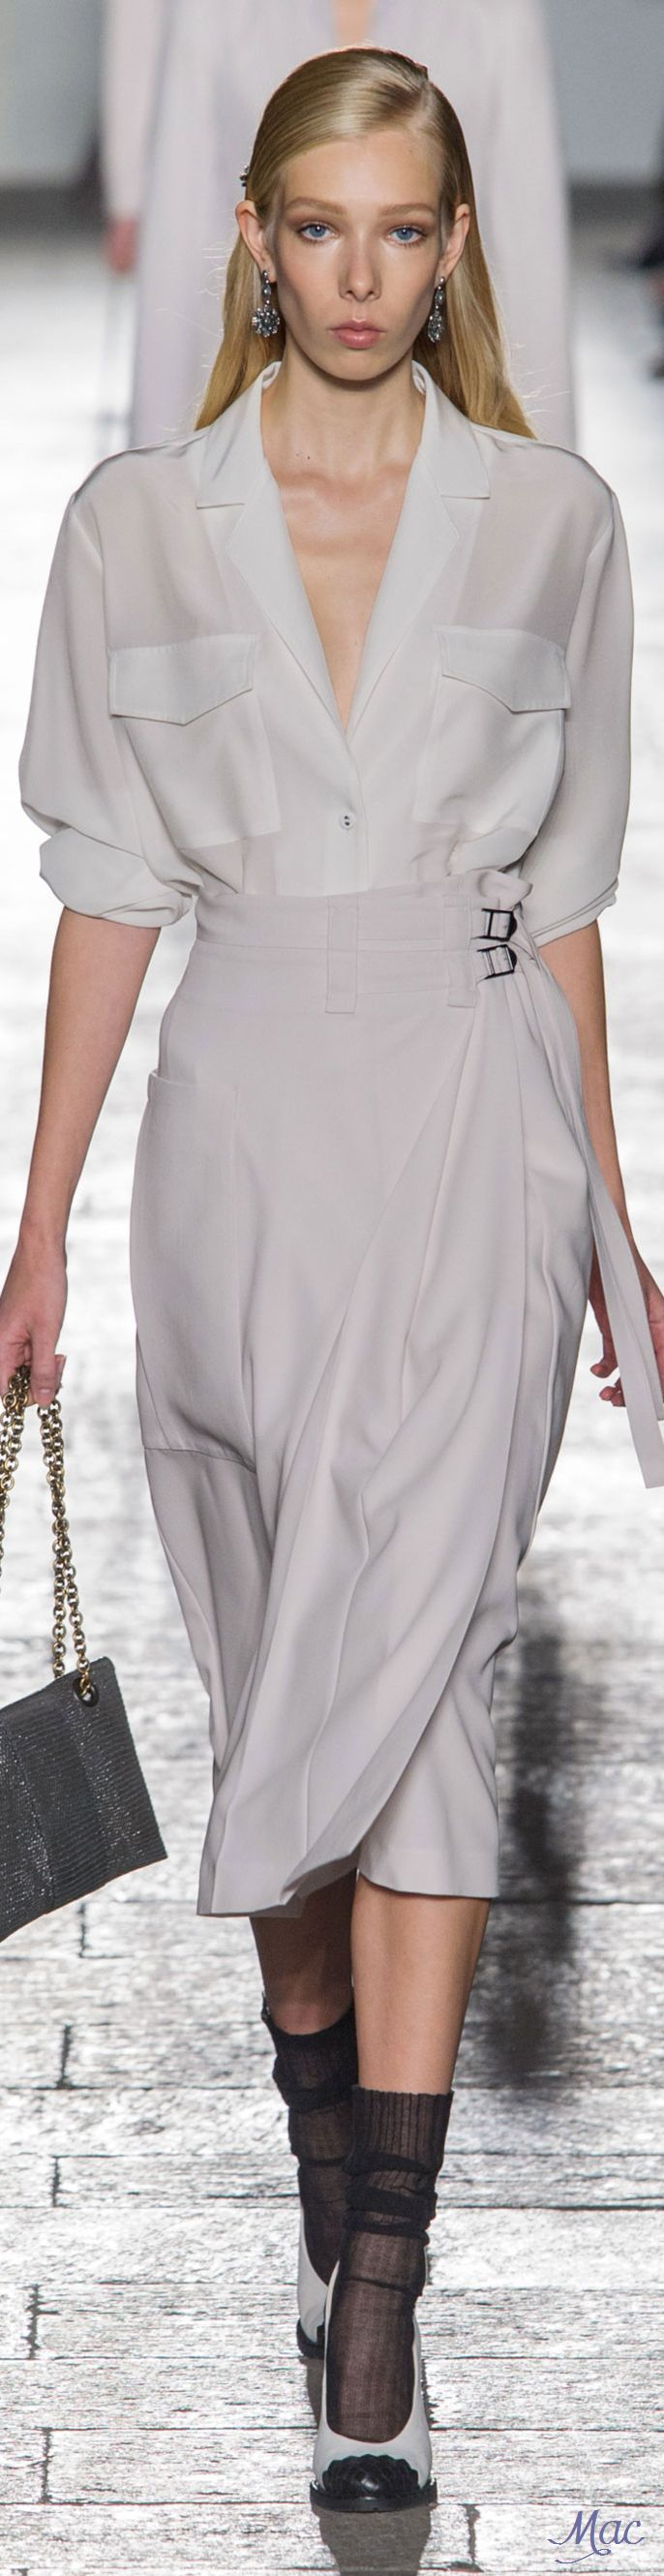 Spring 2017 Ready-to-Wear Bottega Veneta